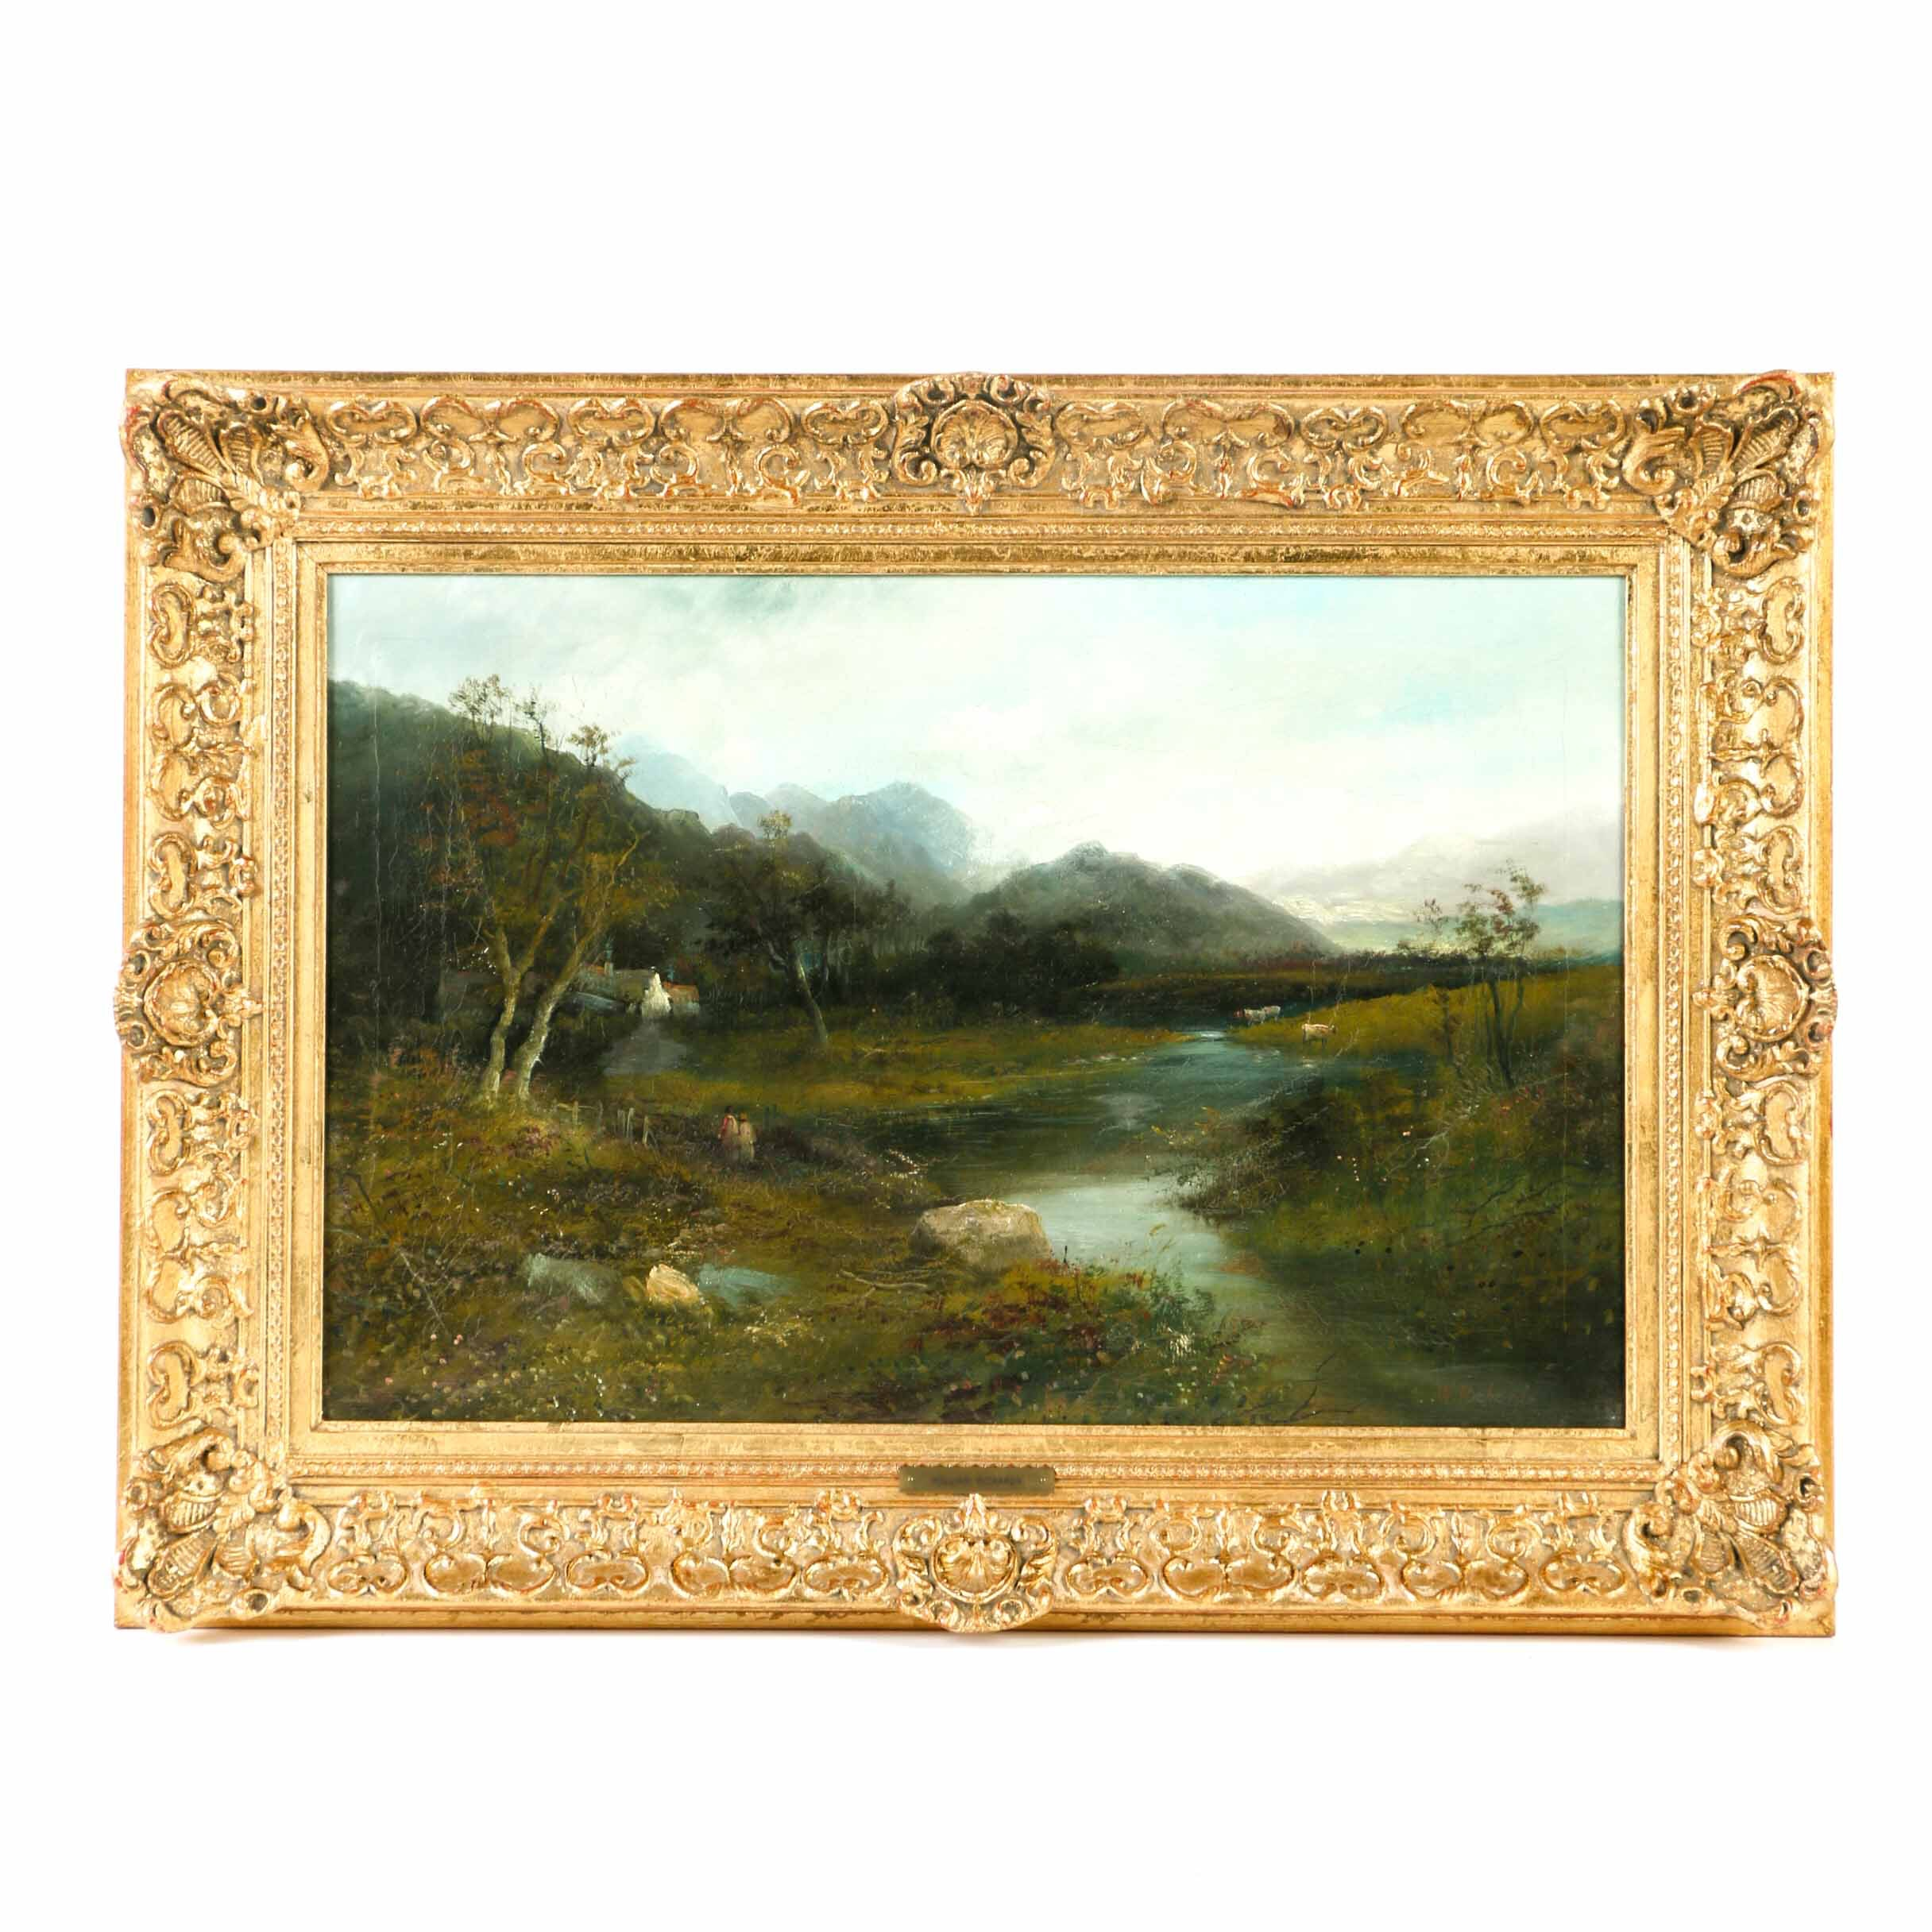 William Richards Oil Painting on Canvas of Pastoral Landscape